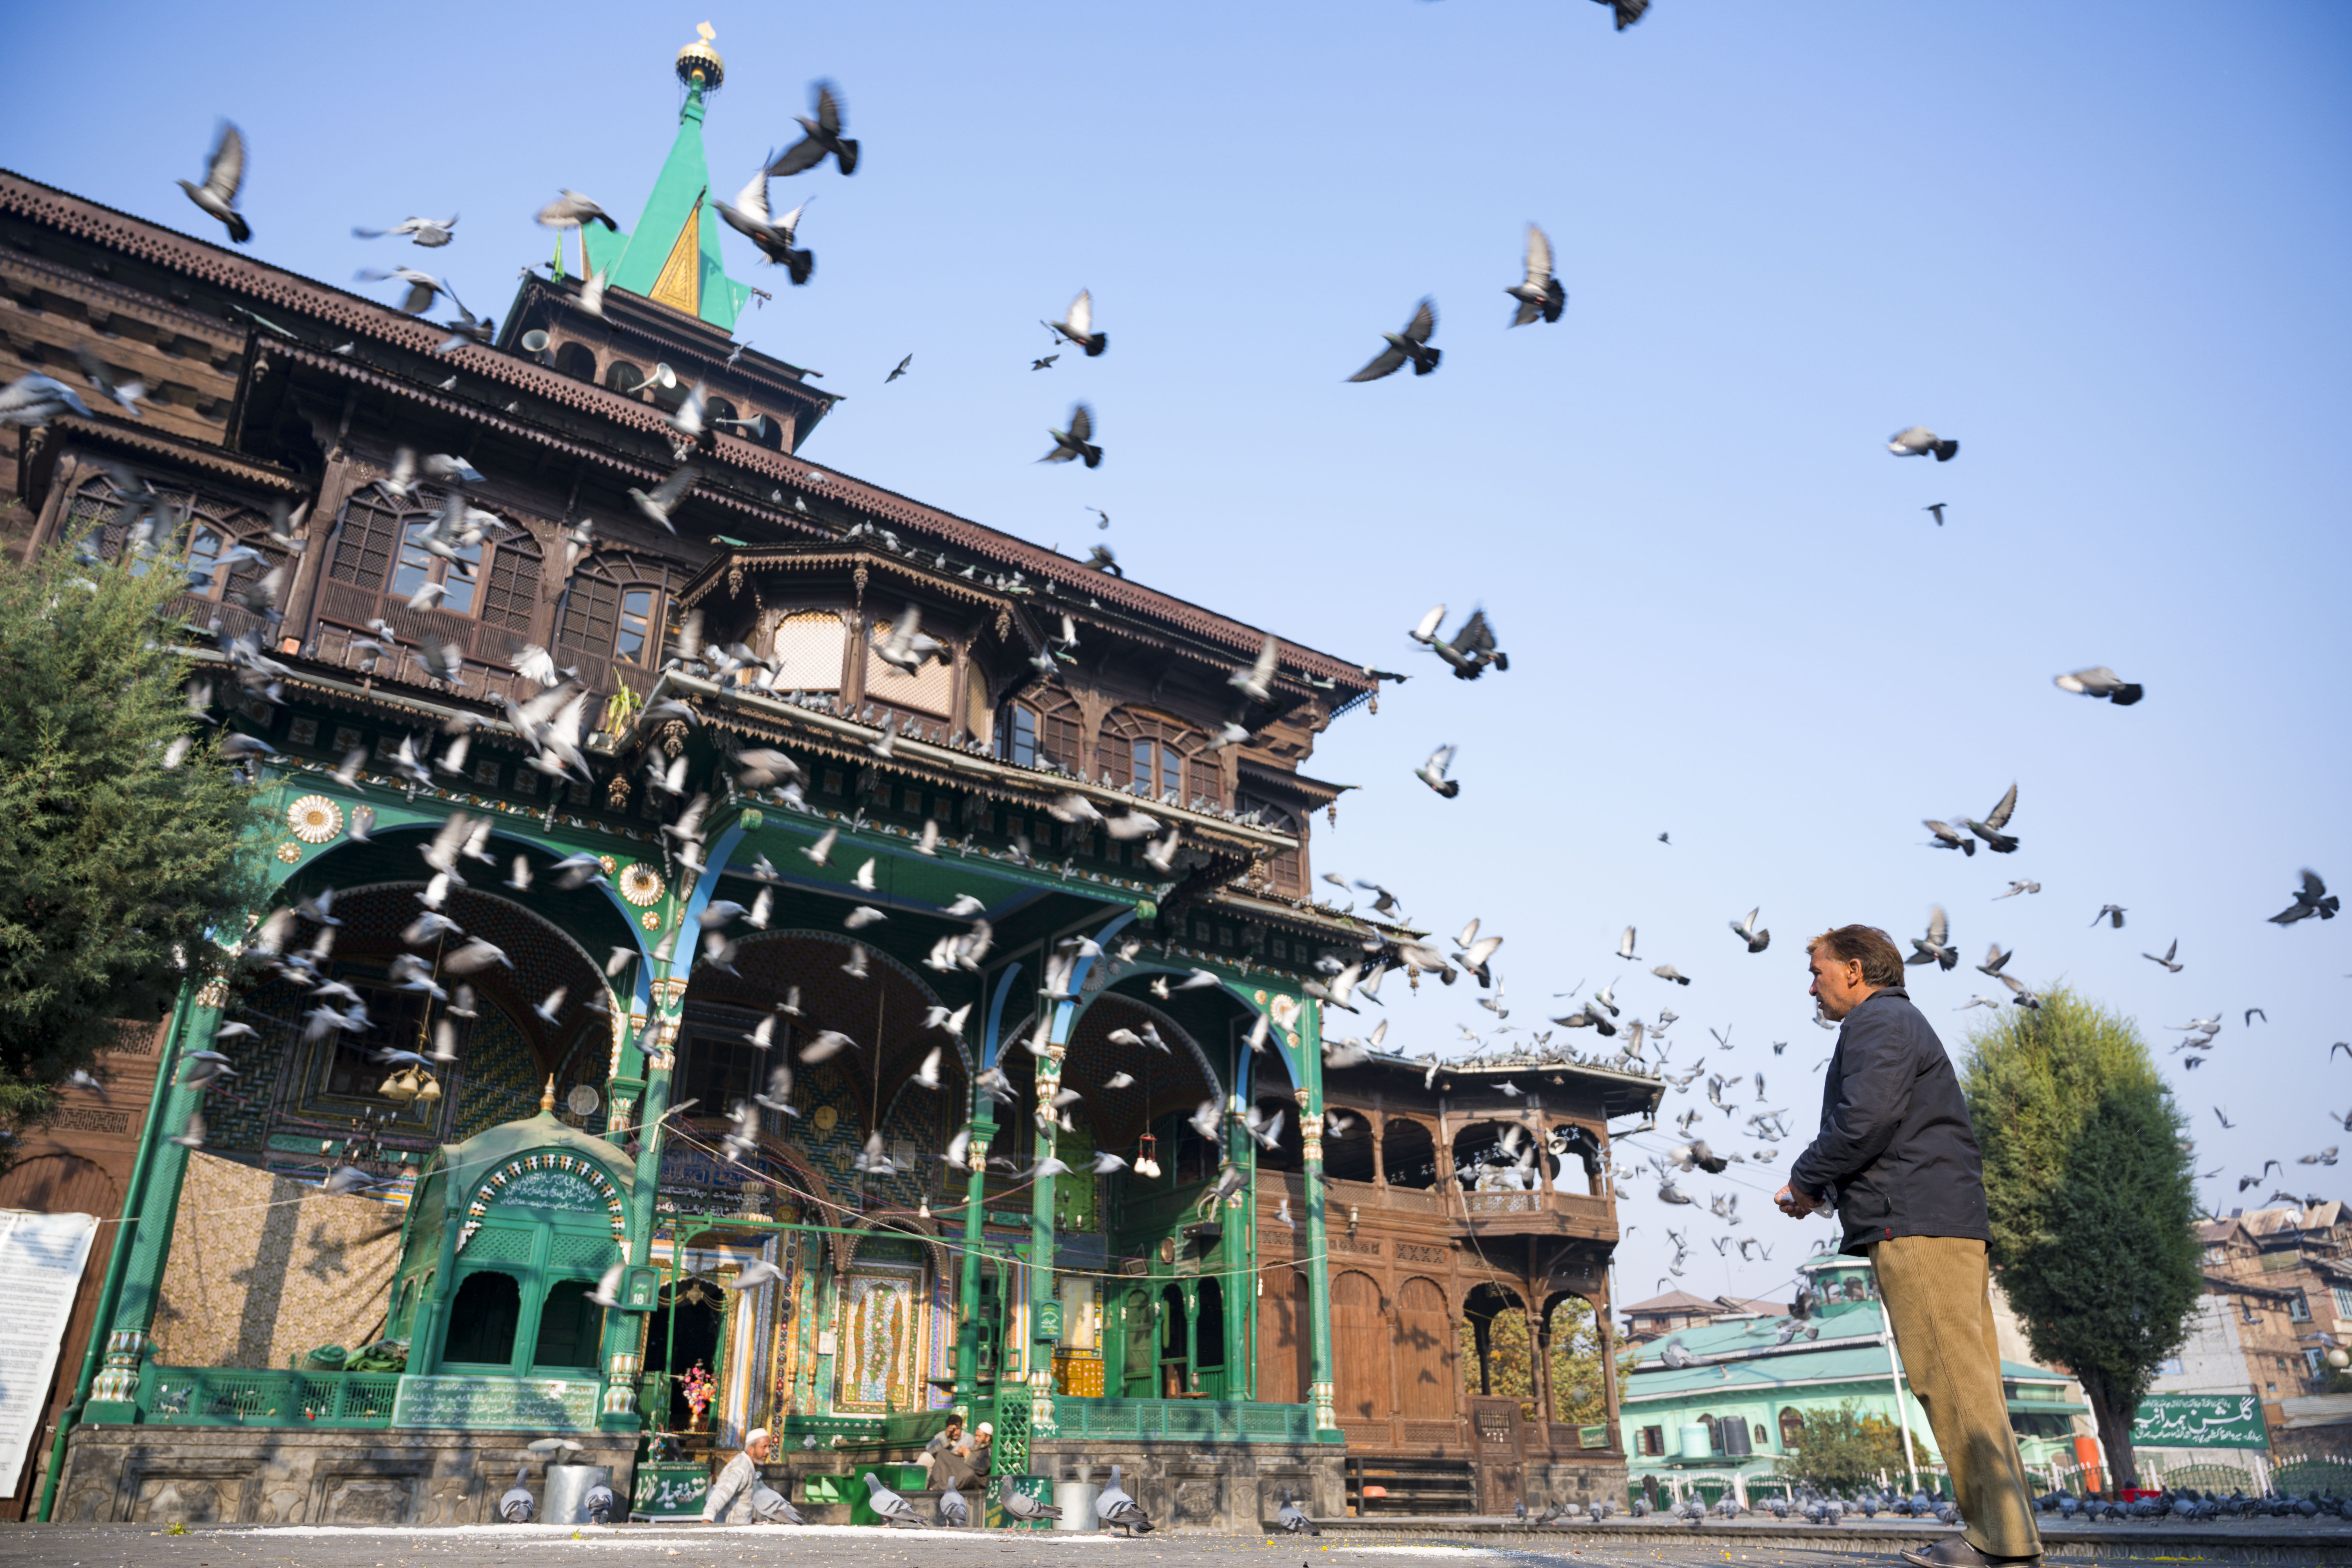 Old Mosque and Flying Pigeons